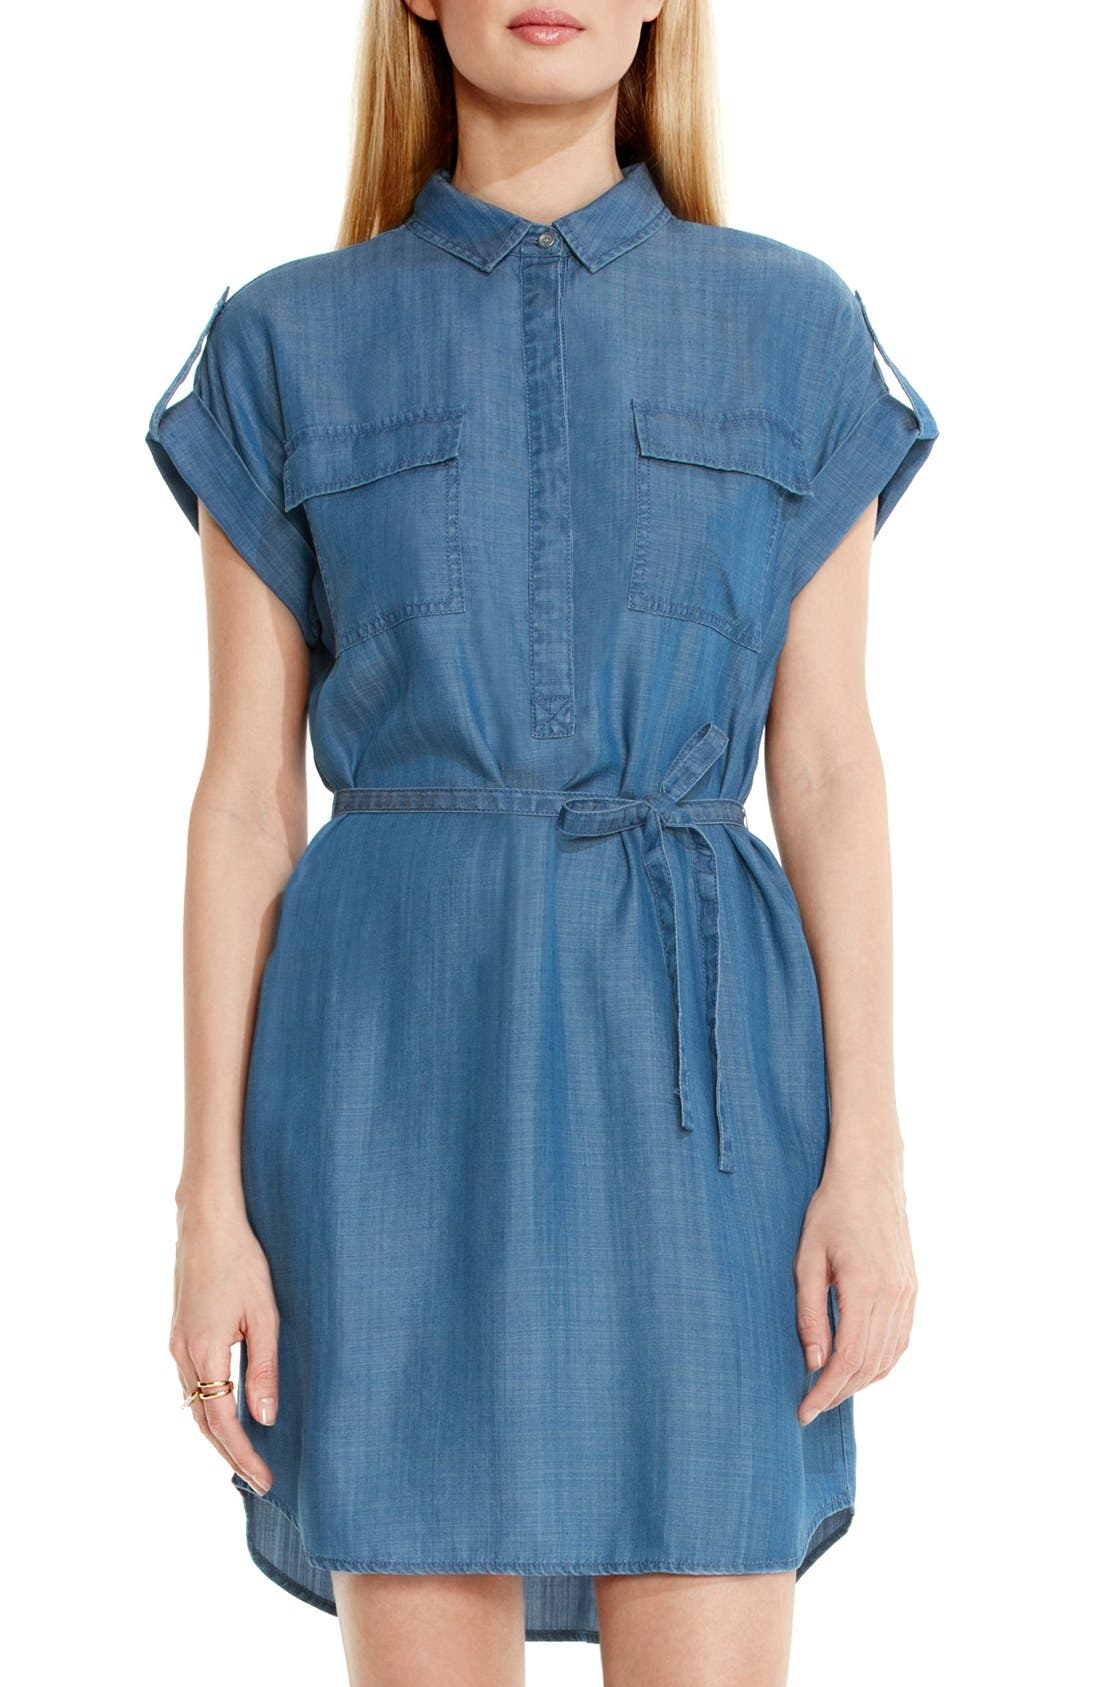 Alternate Image 1 Selected - Two by Vince Camuto Belted Chambray Shirtdress